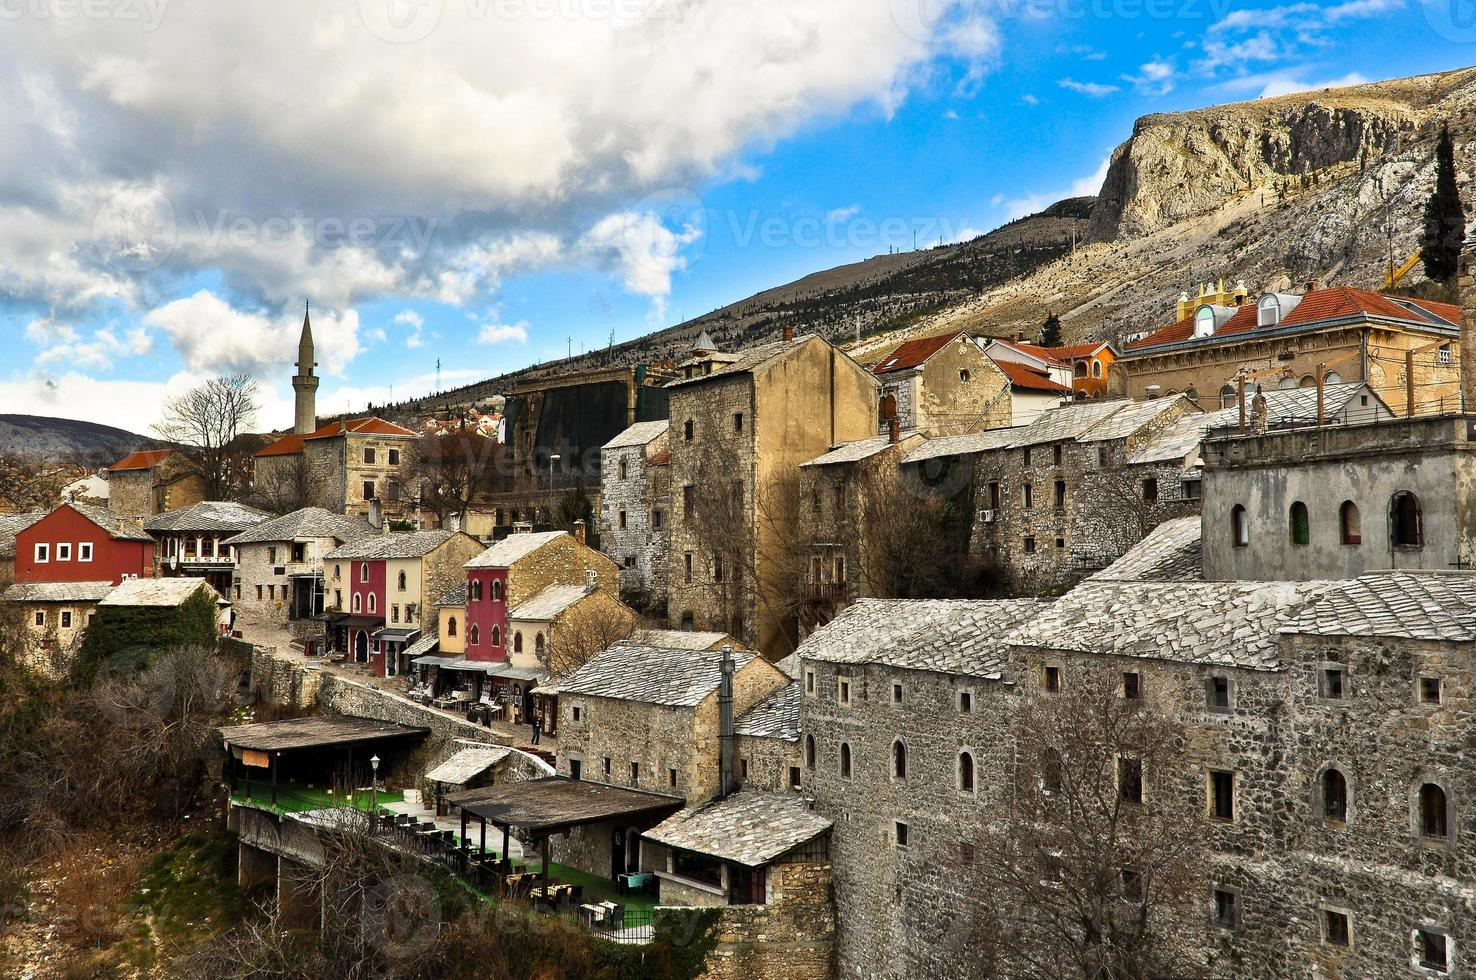 Mostar Old Town Architecture photo